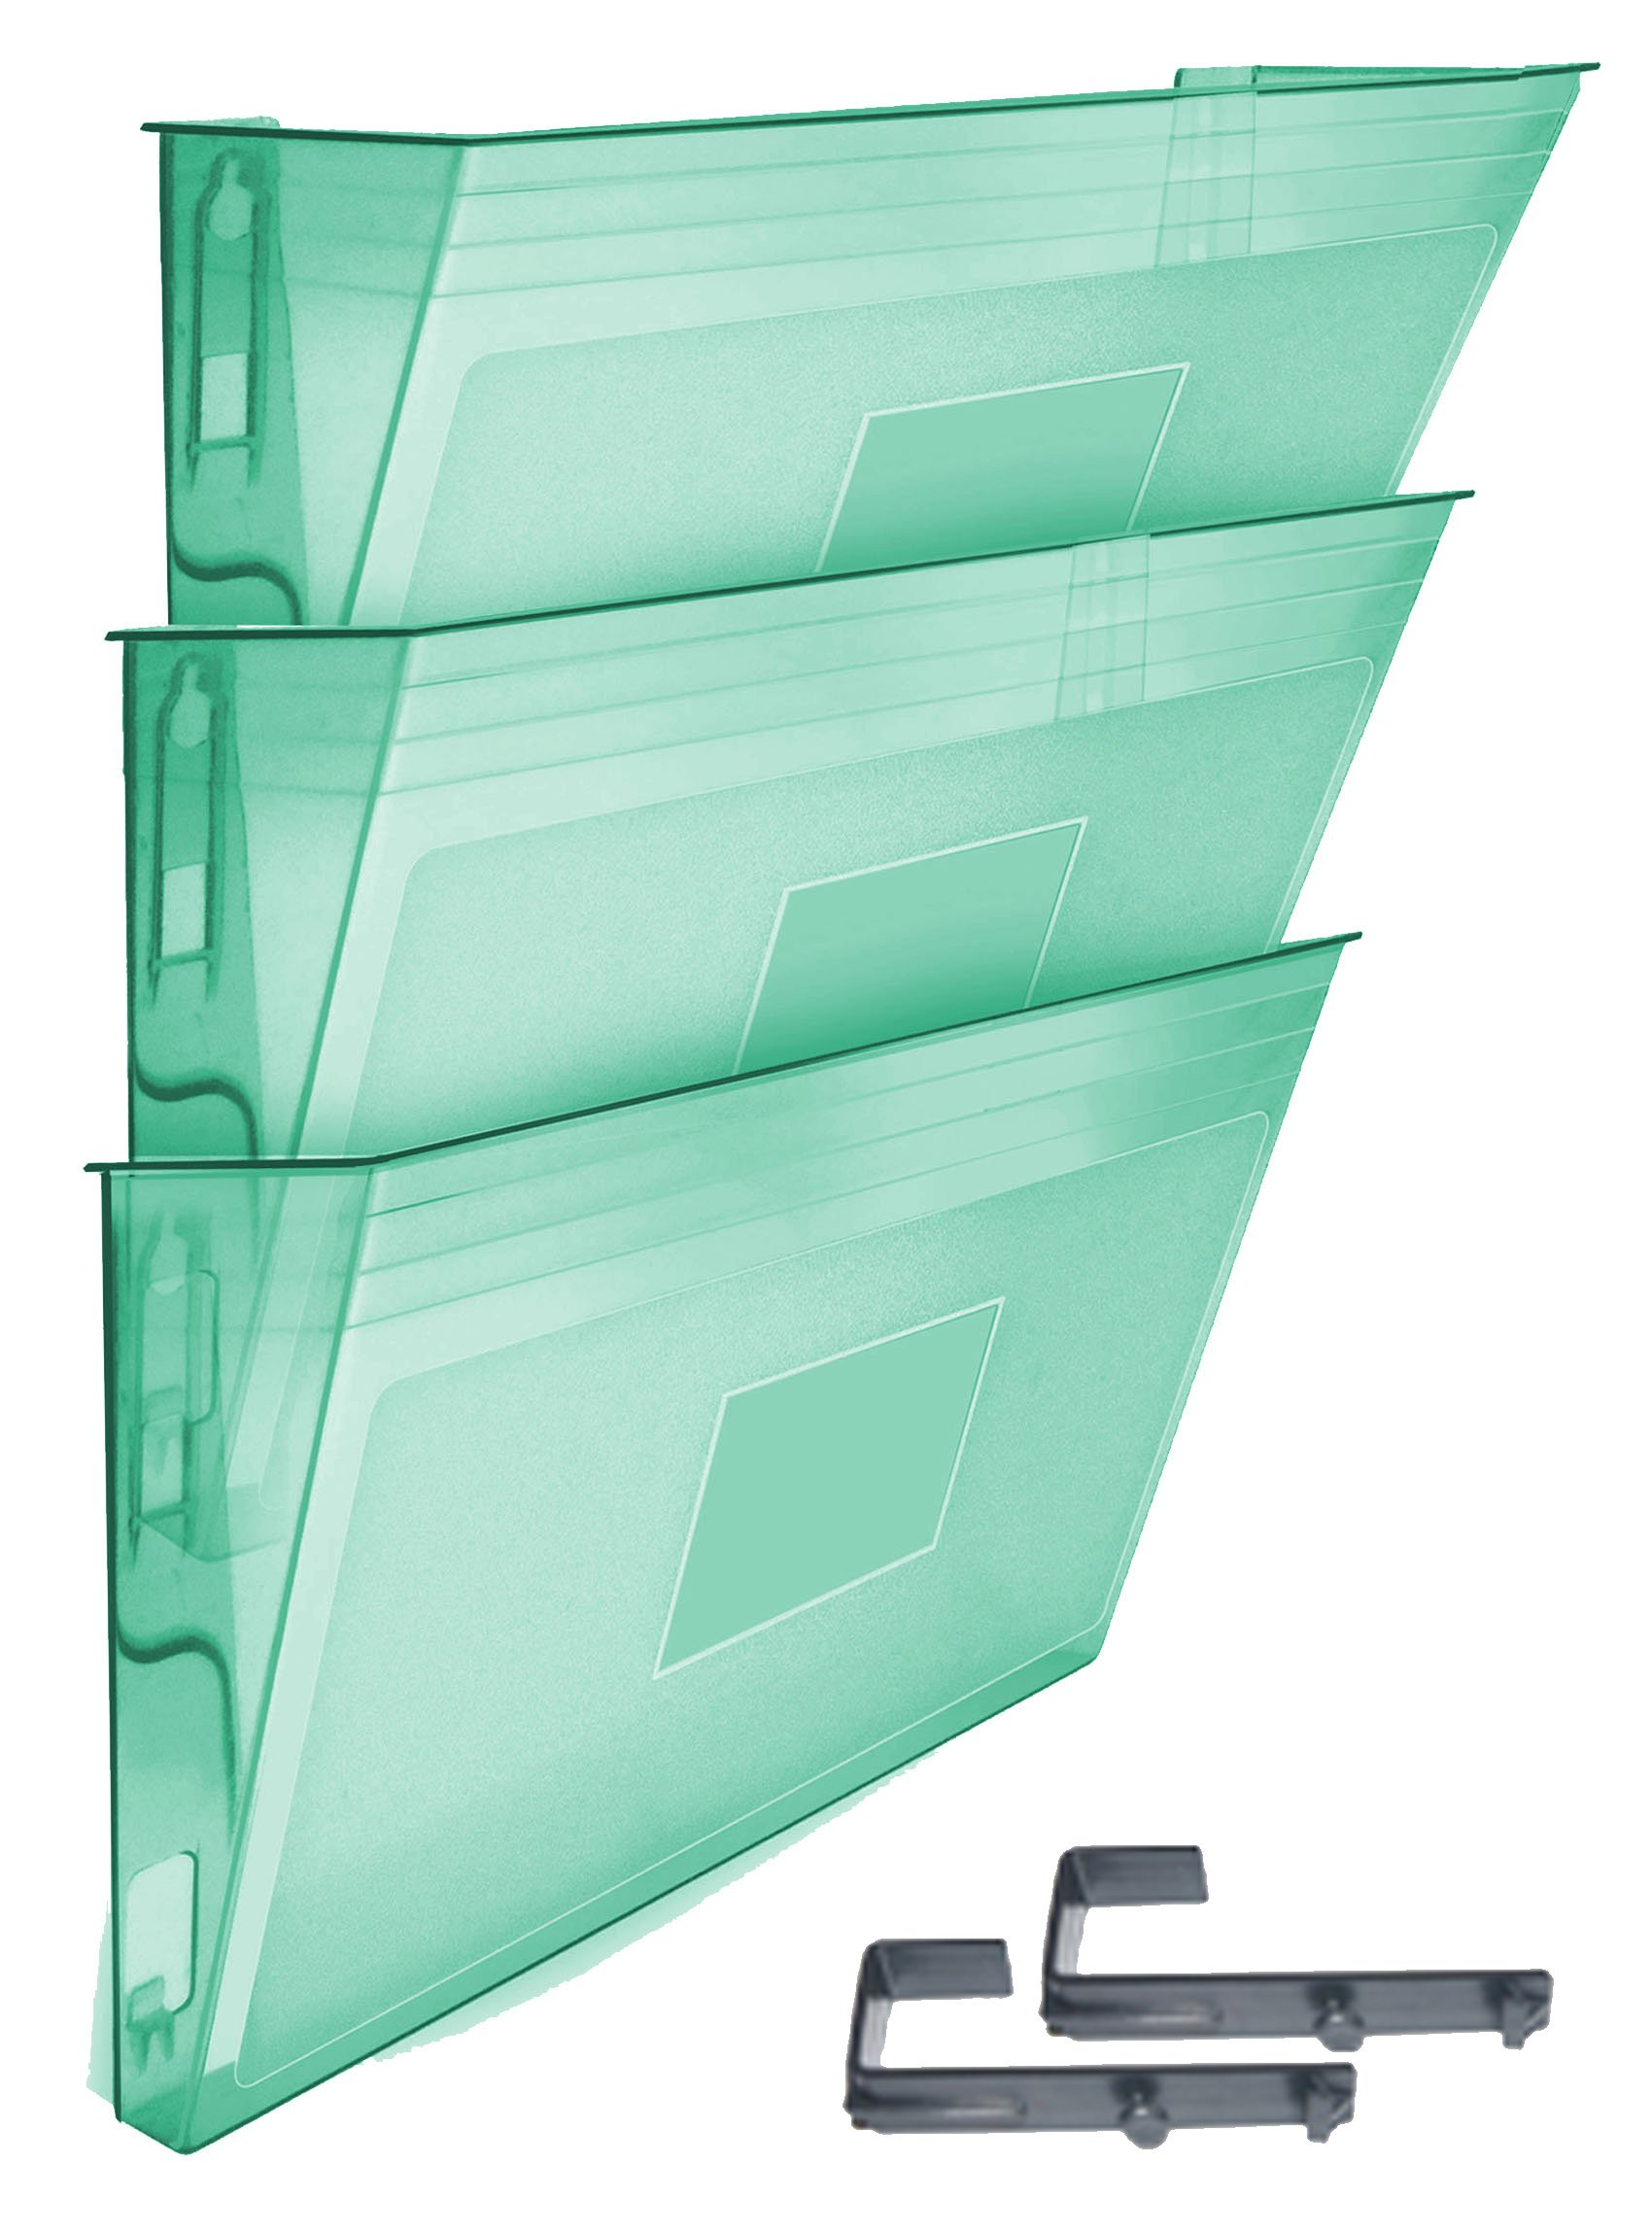 Acrimet Wall-mounted Modular File Holder (3 - Pack) (Clear Green Color)